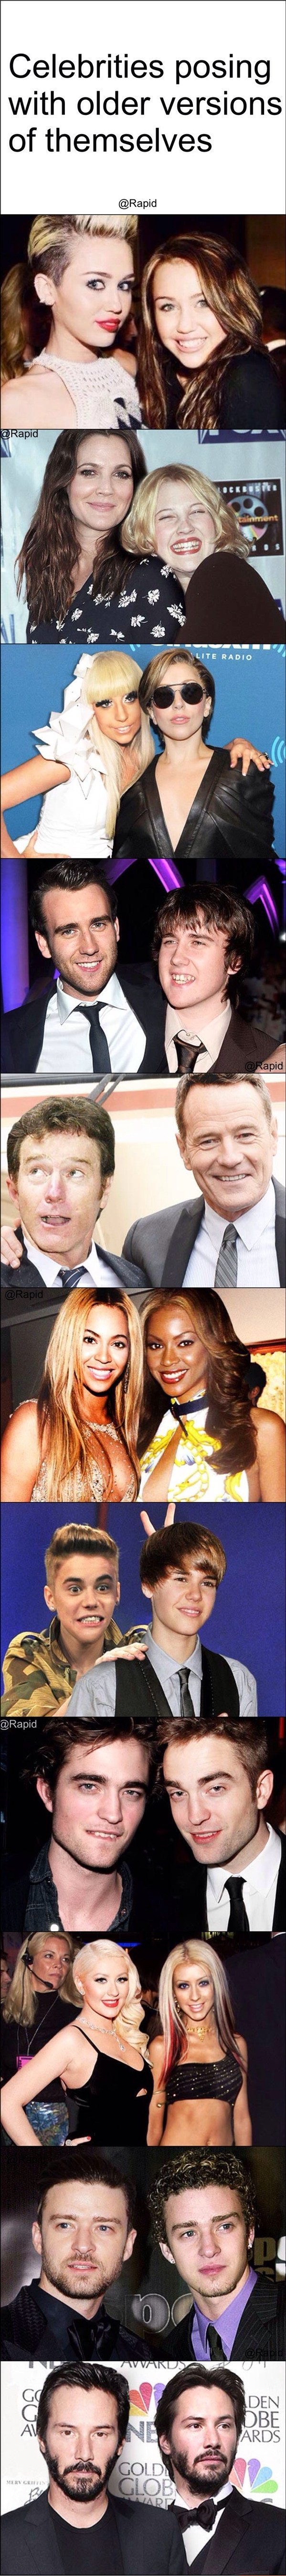 funny-picture-celebs-themselves